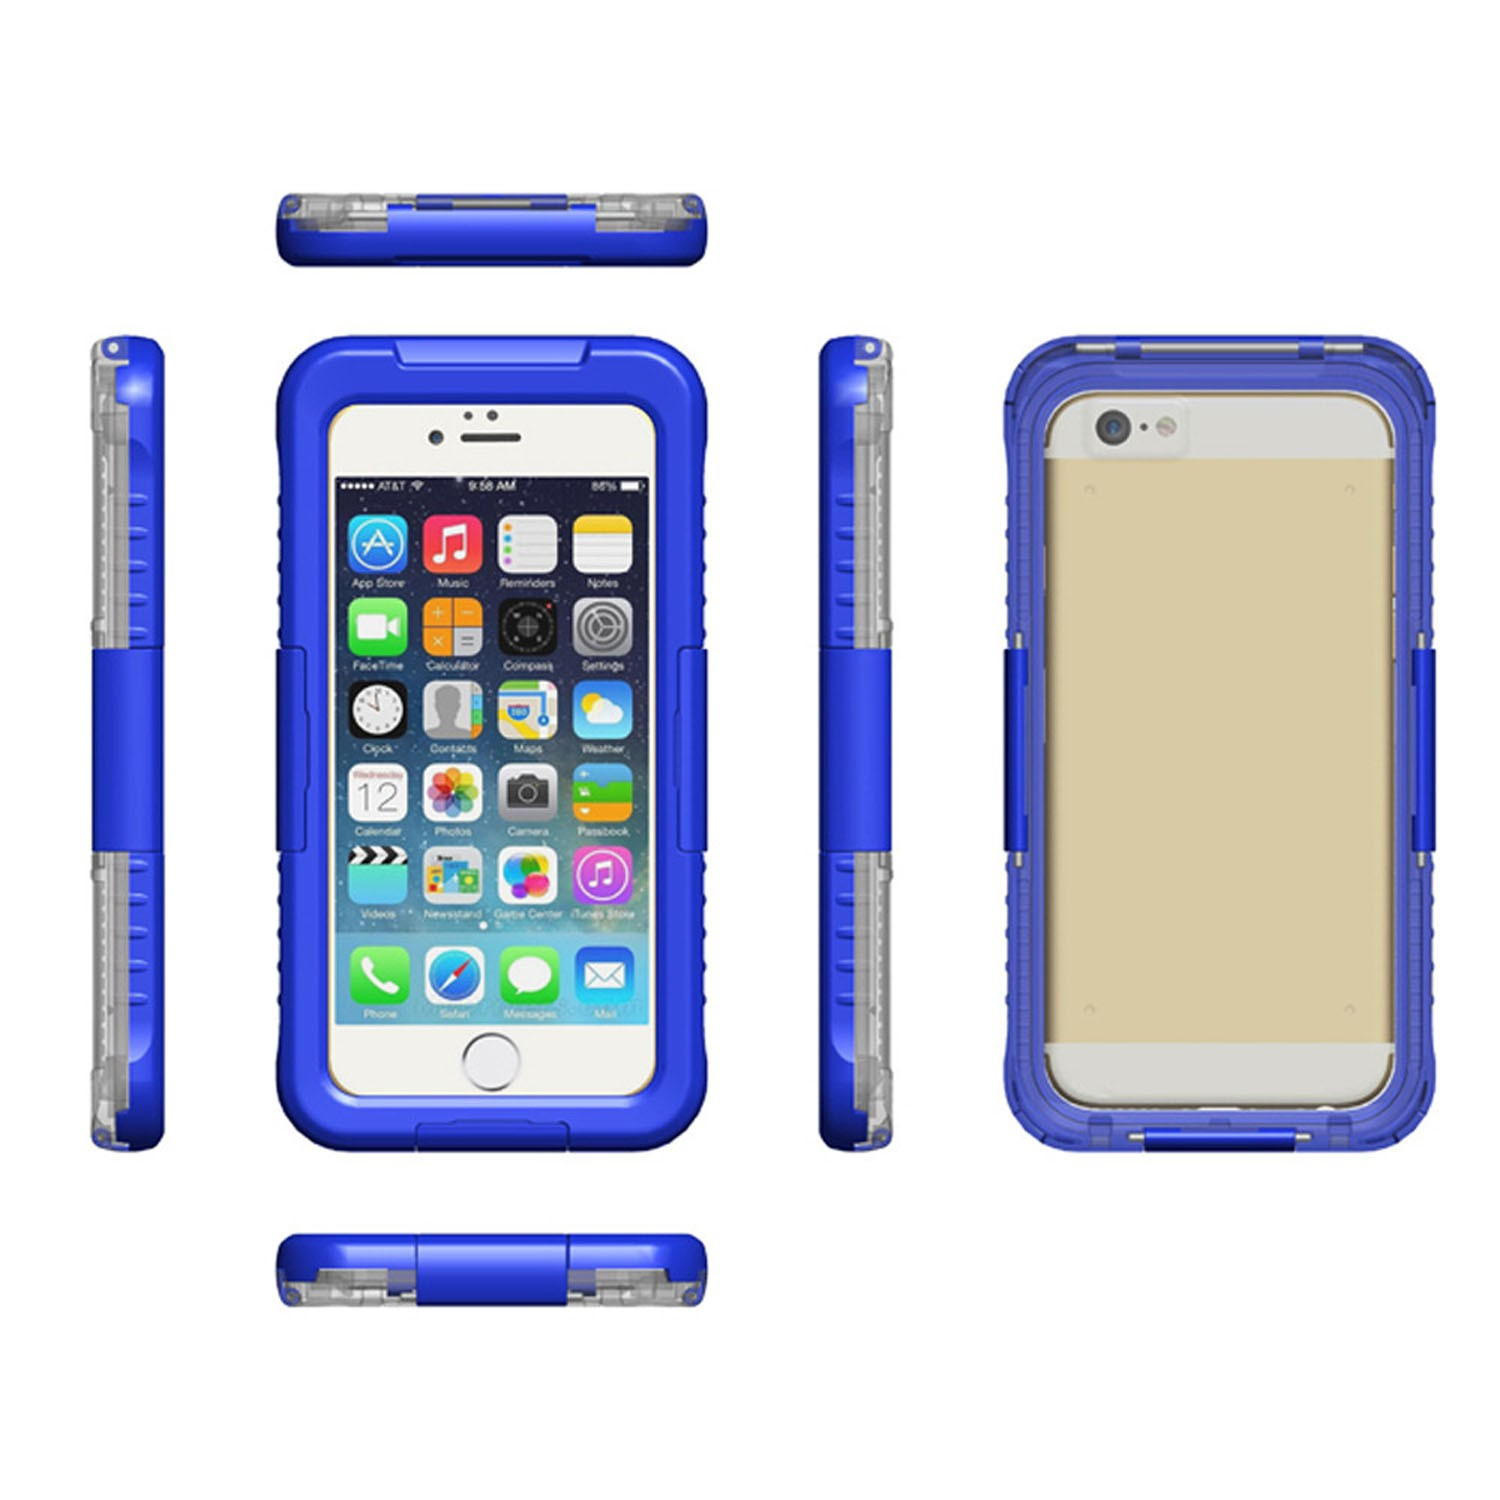 Yemota Pro Waterproof Case iPhone 6 / 6S - Blau